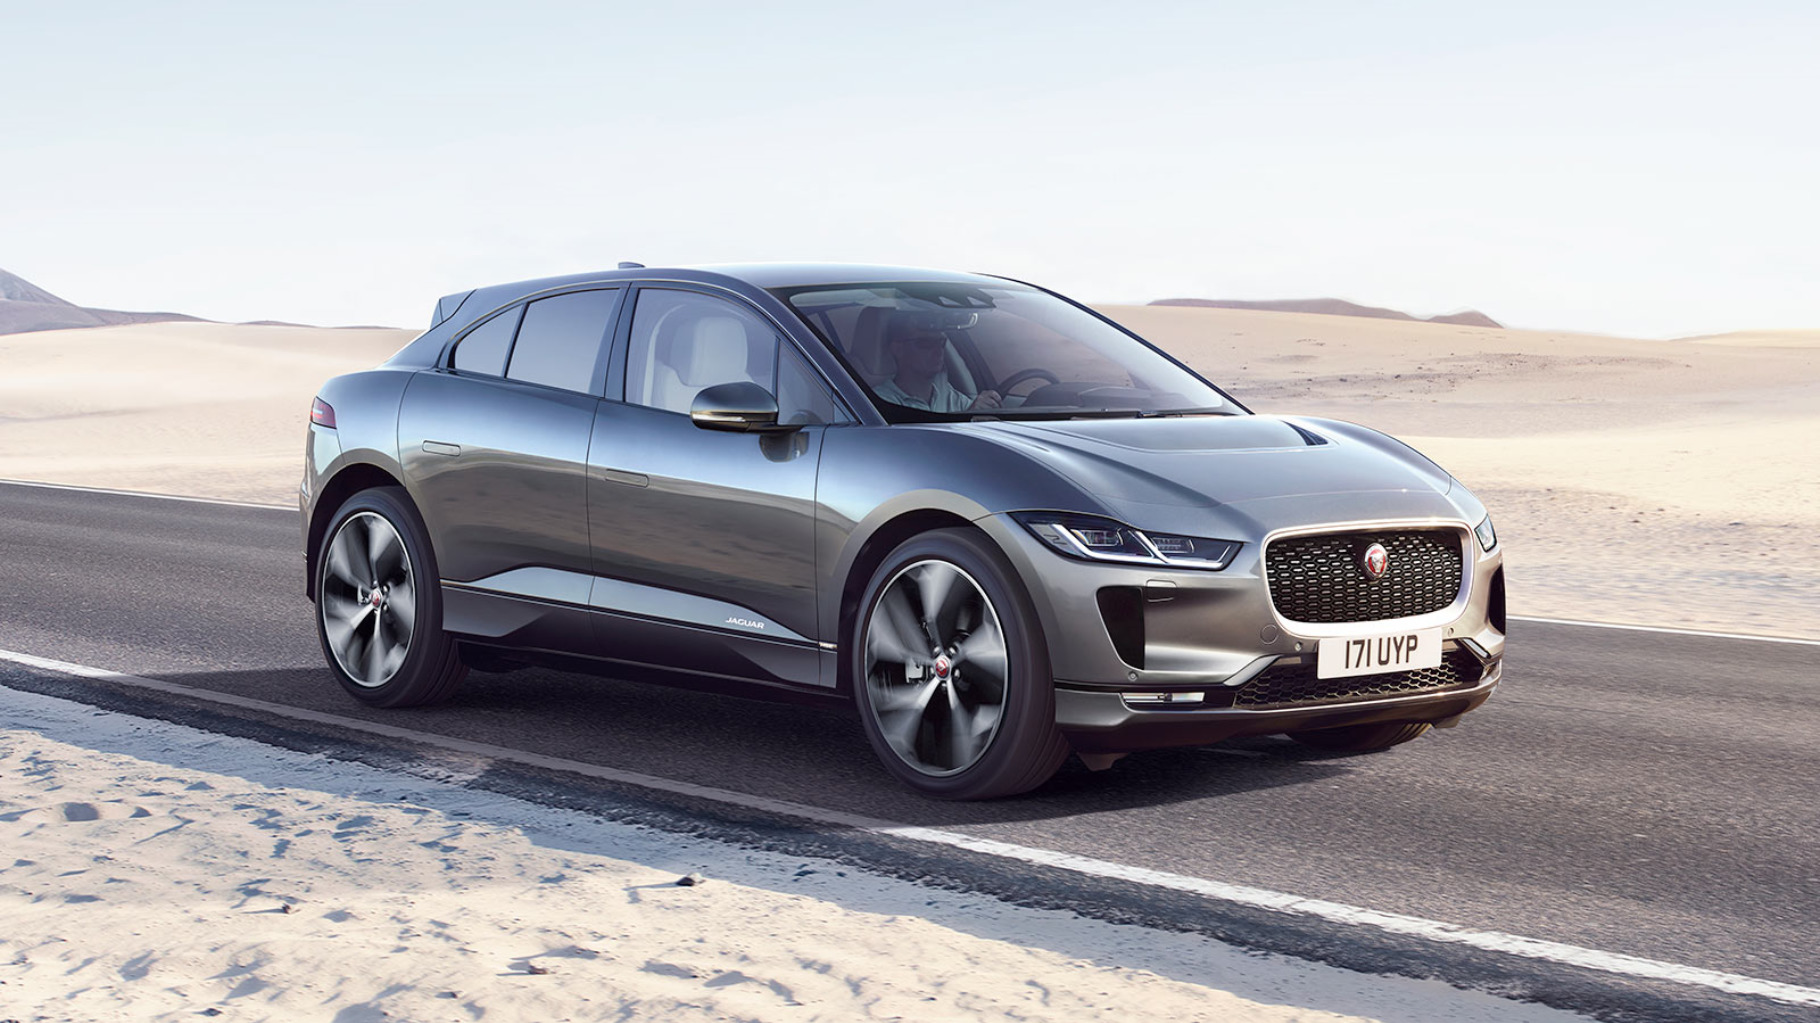 Jaguar I-PACE Front 3 Quarter driving on a road in rough terrain